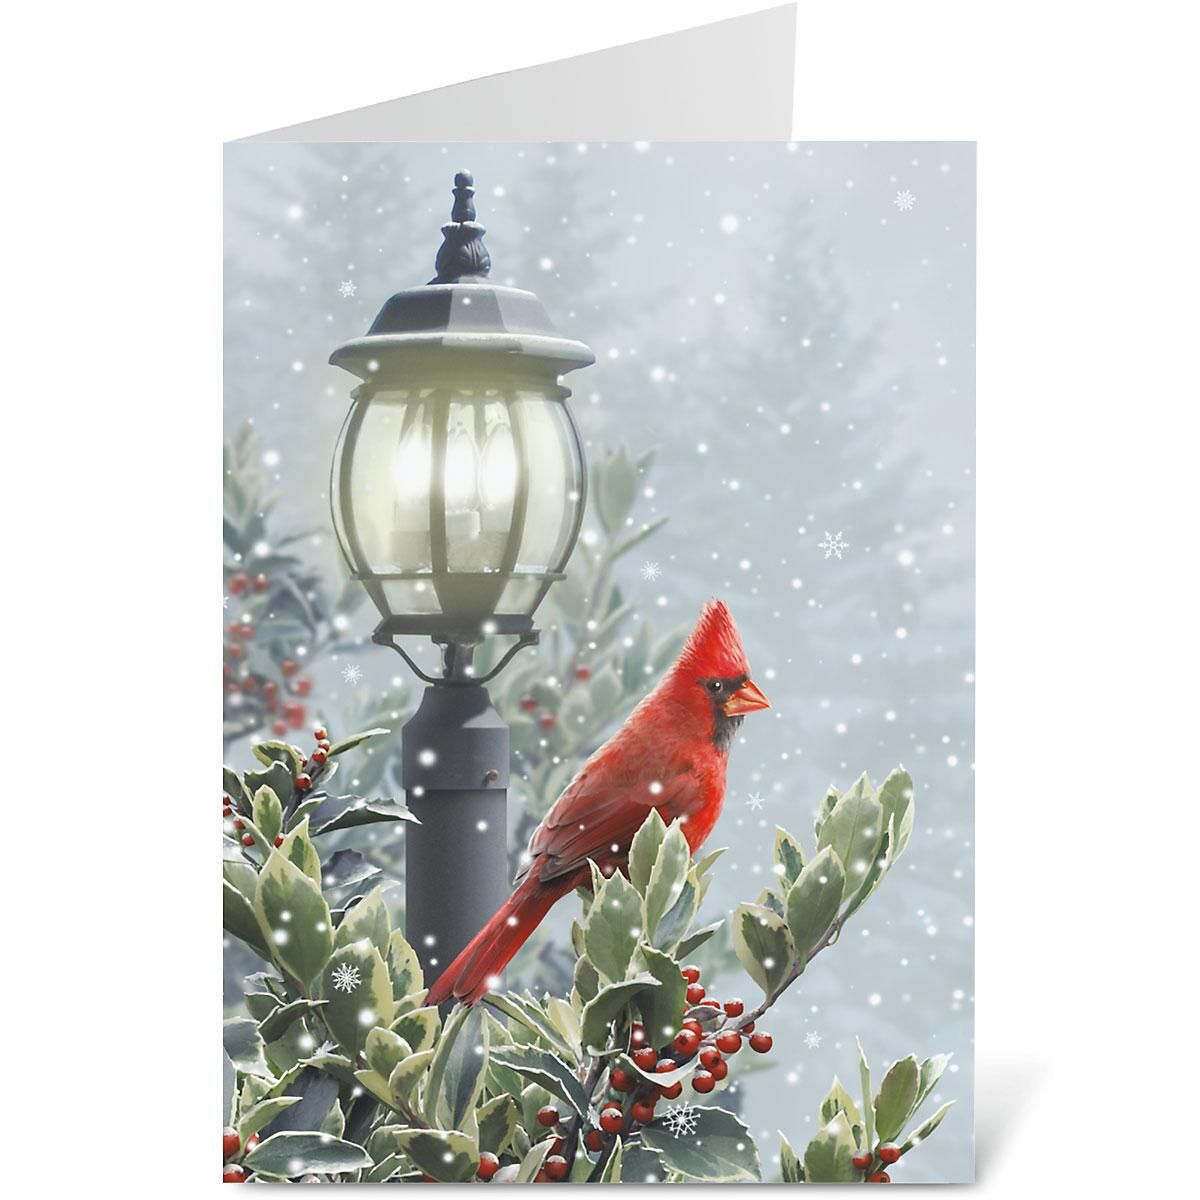 Winter Solitude Personalized Christmas Cards - Set of 72